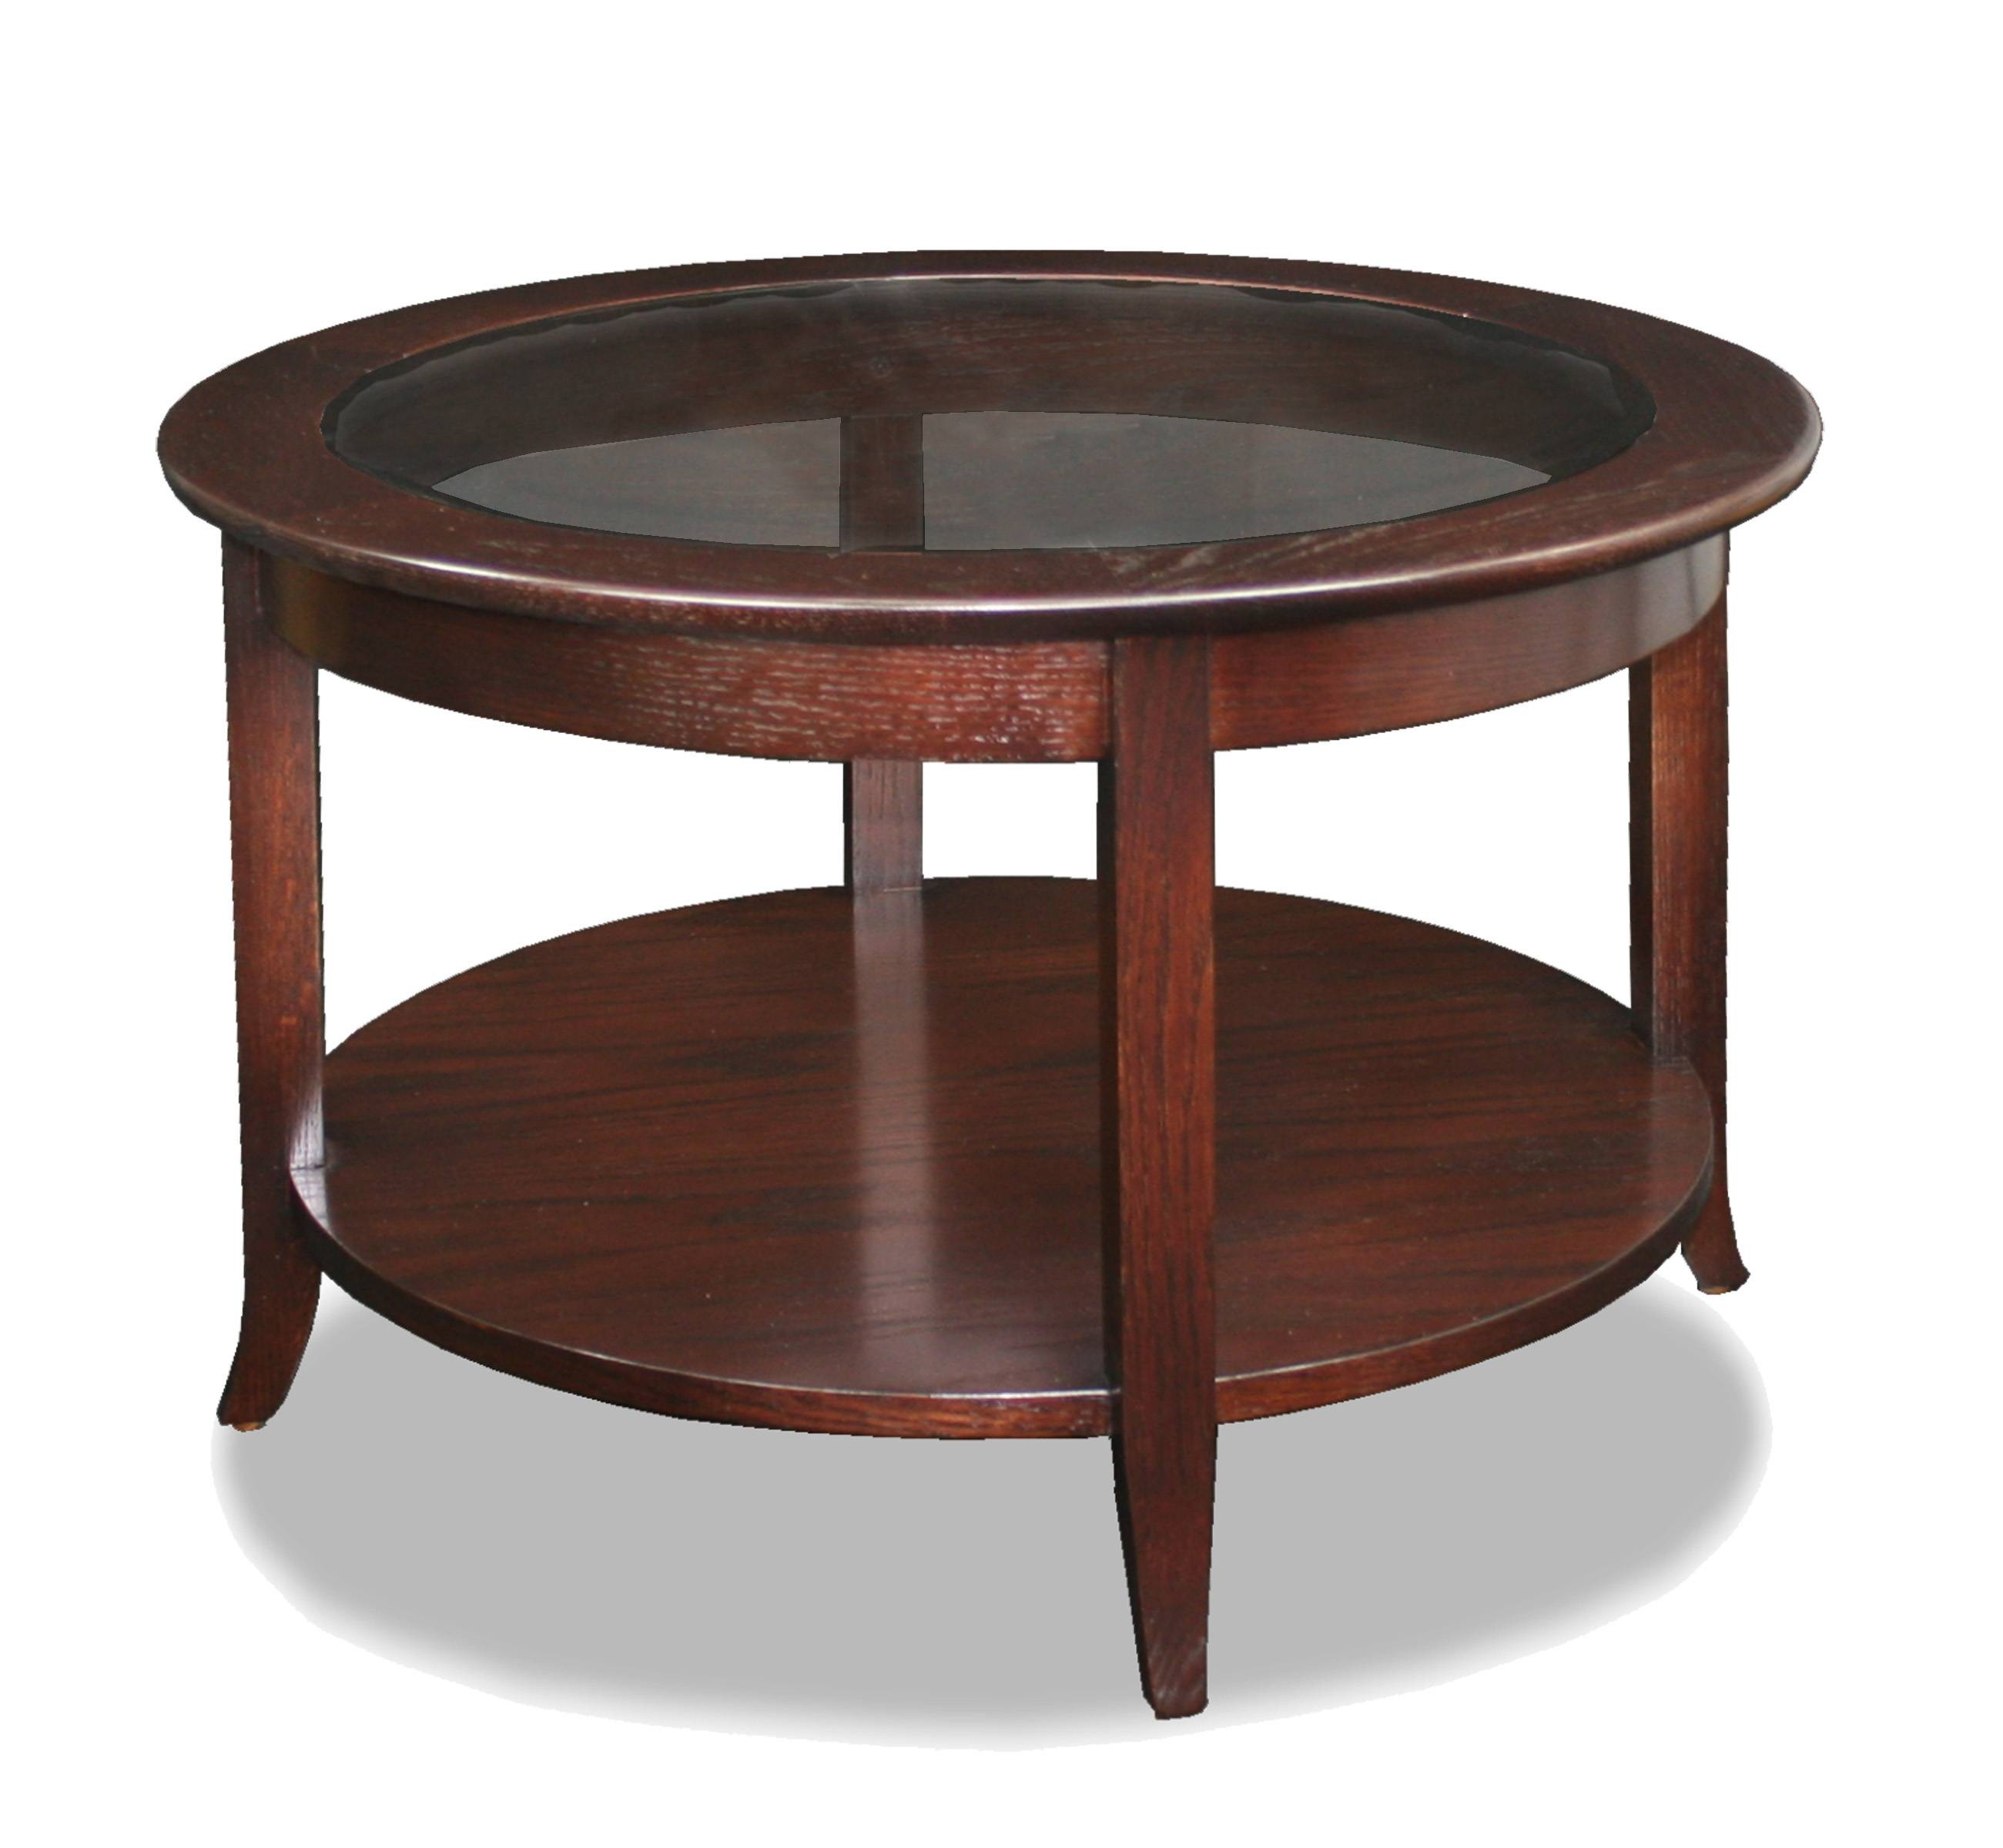 2017 Latest Small Round Coffee Tables